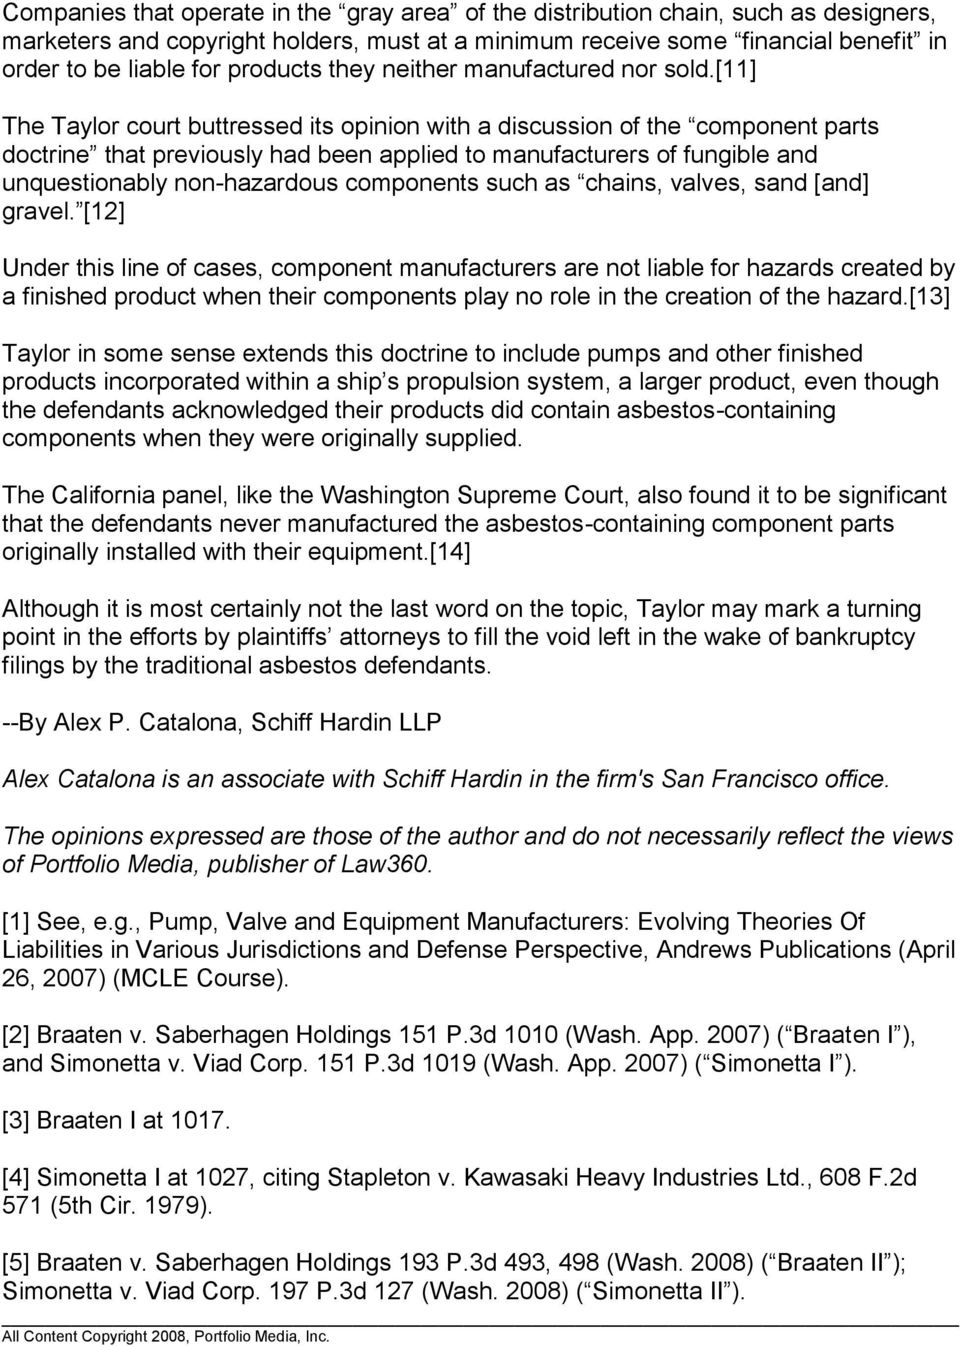 [11] The Taylor court buttressed its opinion with a discussion of the component parts doctrine that previously had been applied to manufacturers of fungible and unquestionably non-hazardous